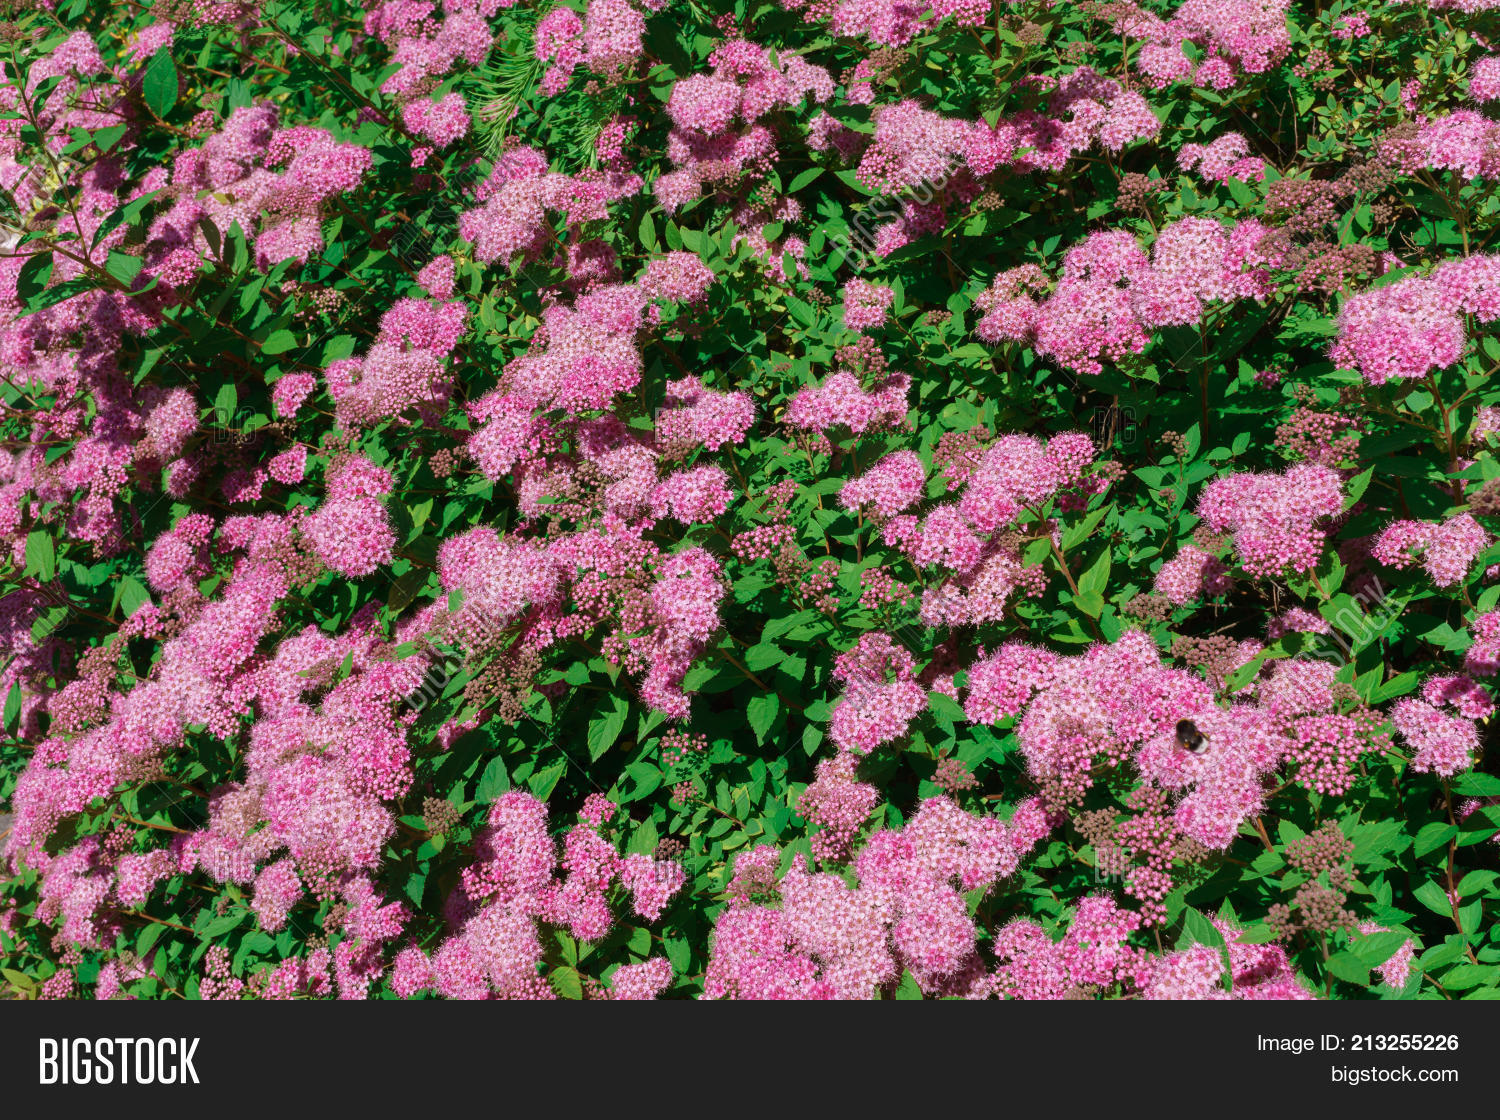 Autumn Bushes Pink Image Photo Free Trial Bigstock